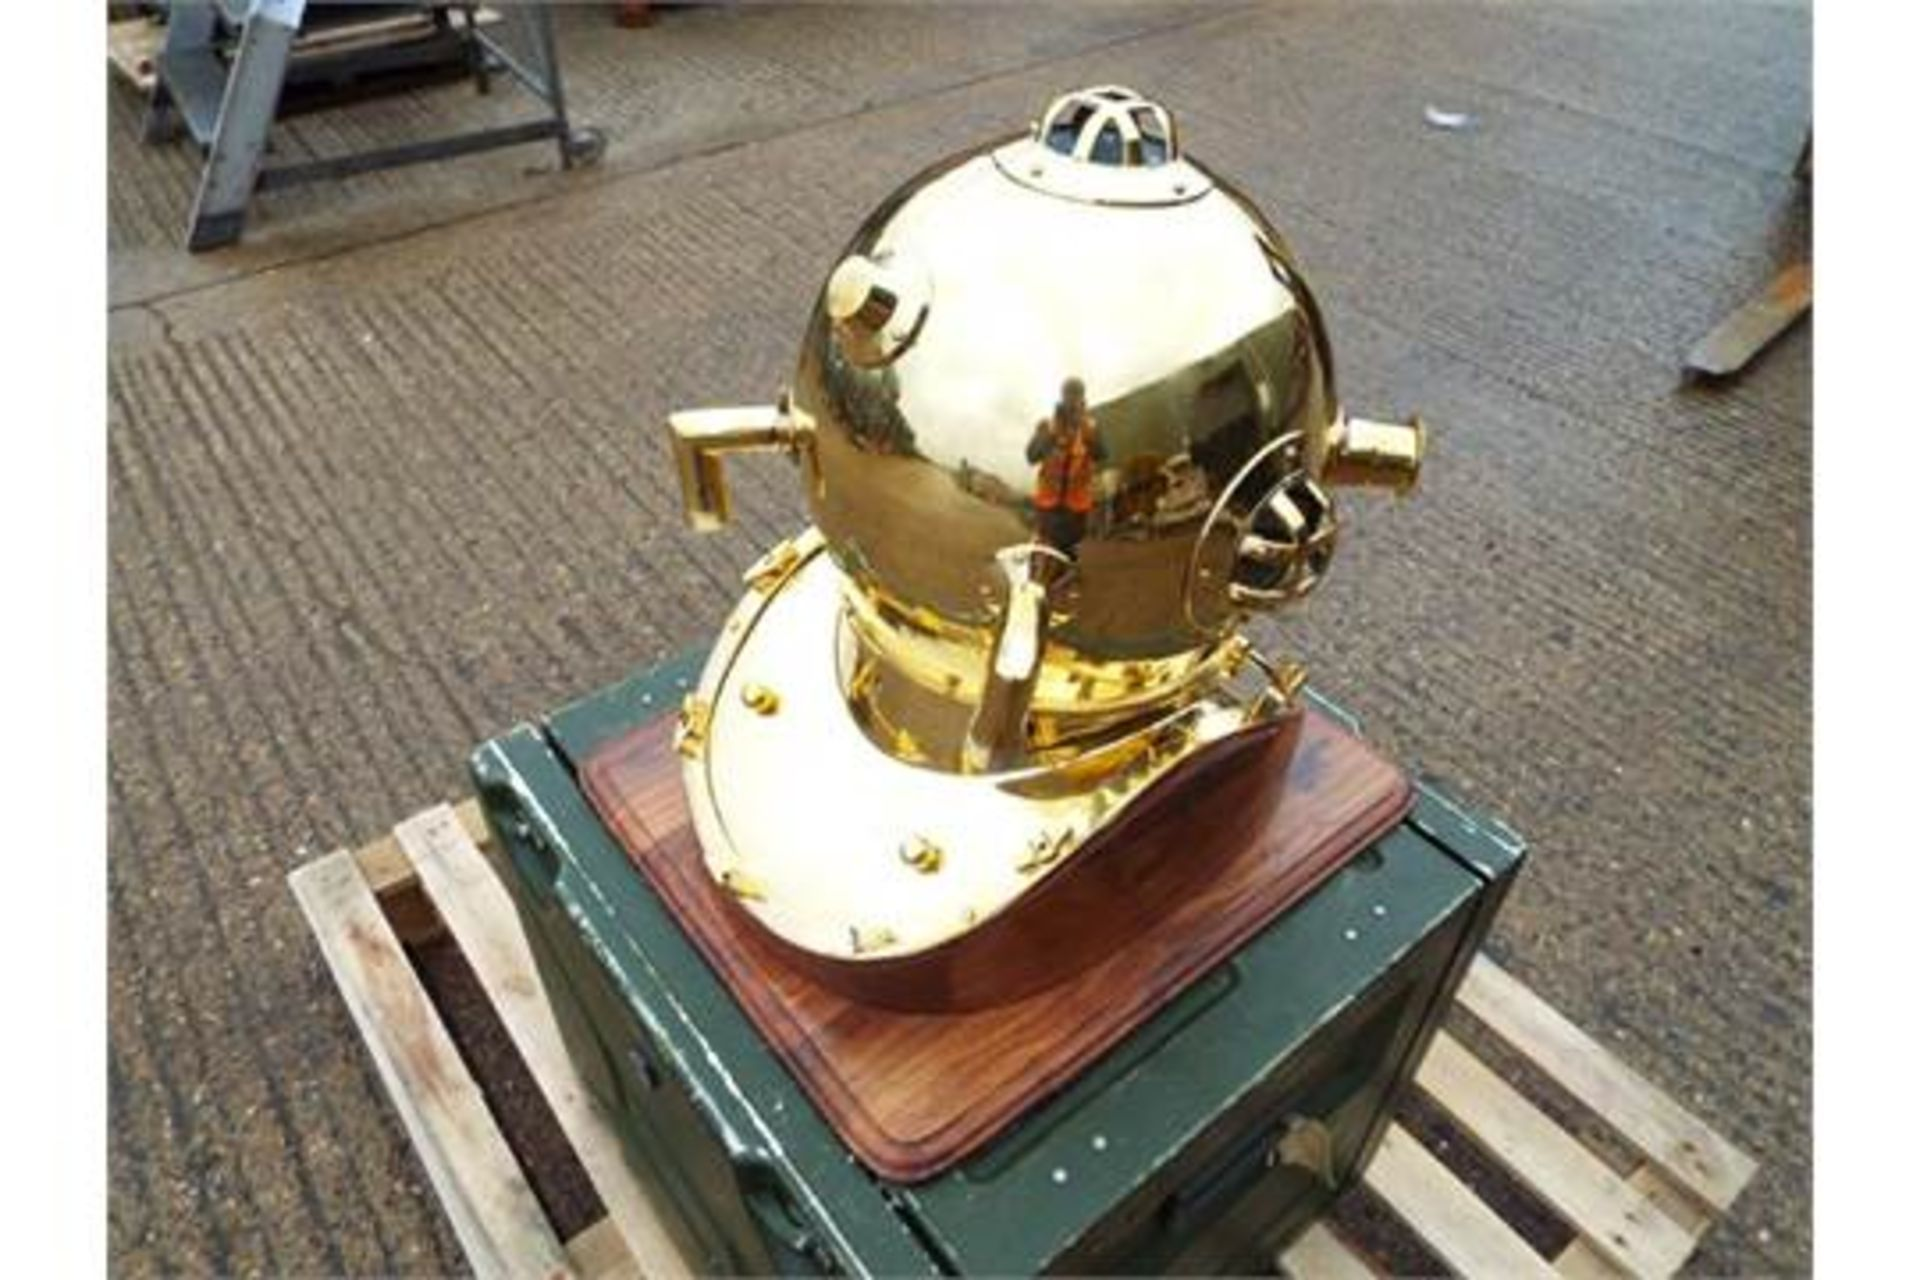 Lot 269 - Replica Full Size U.S. Navy Mark V Brass Diving Helmet on Wooden Display Stand